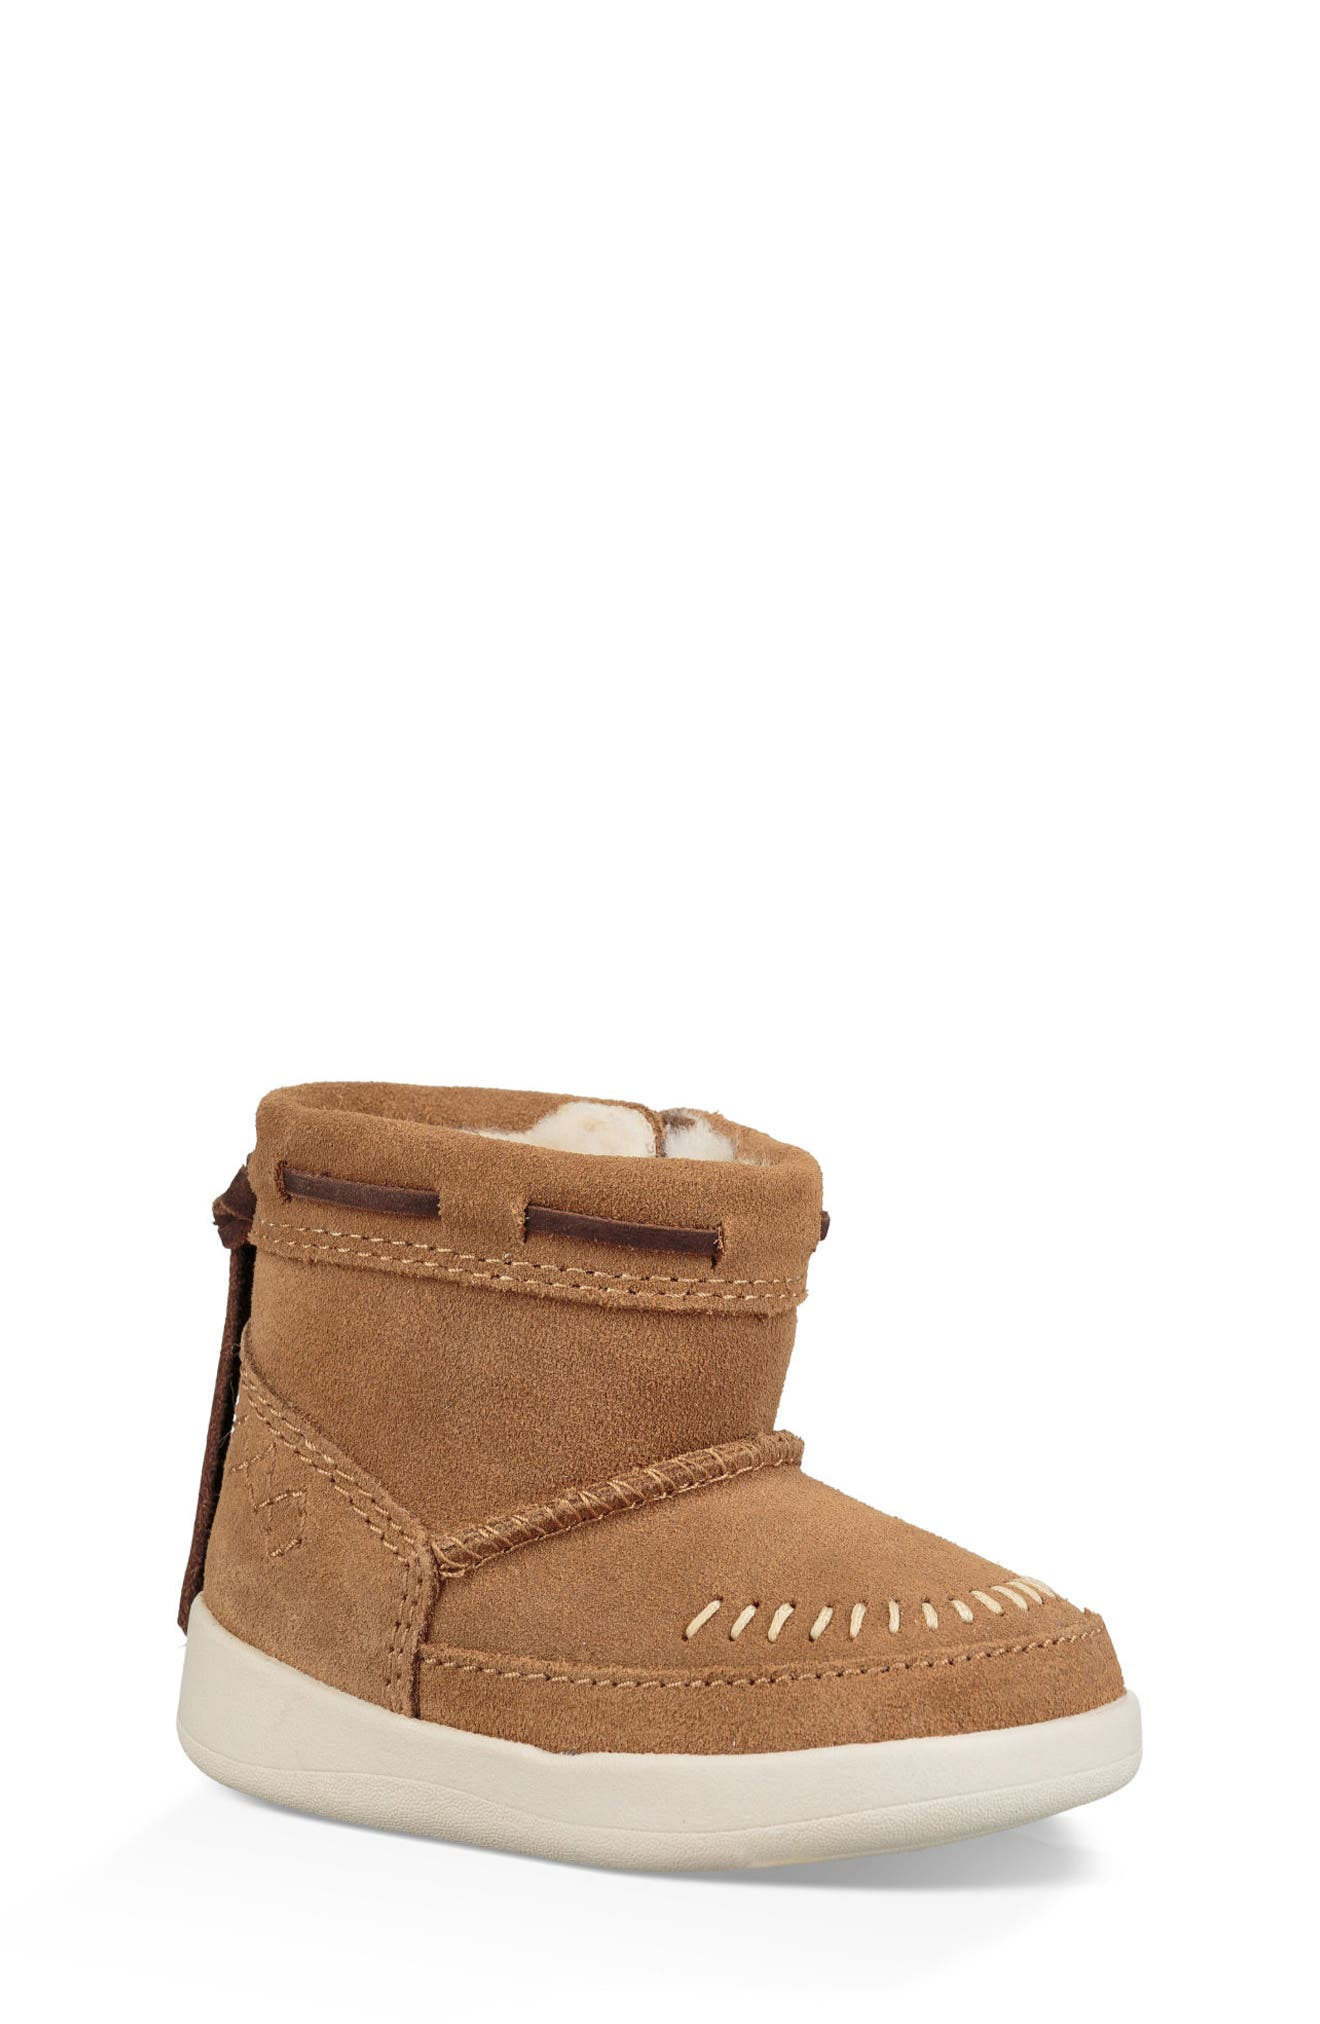 Cali Moc Campfire Bootie,                         Main,                         color, 219